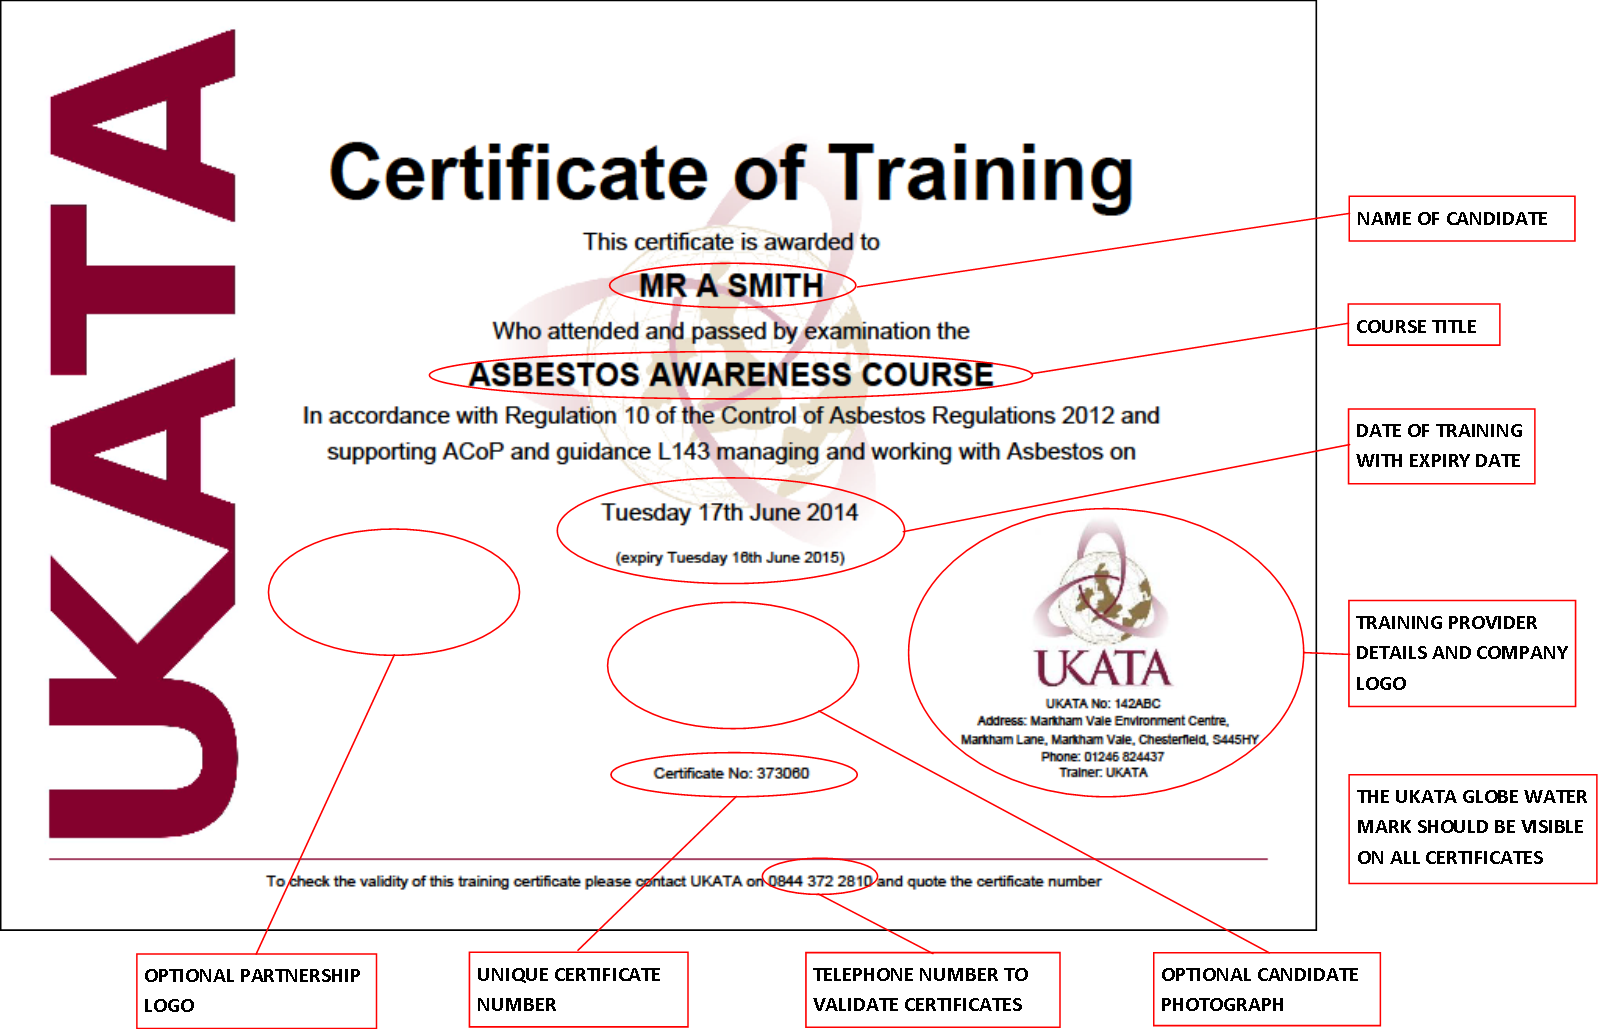 Does your certificae look like this